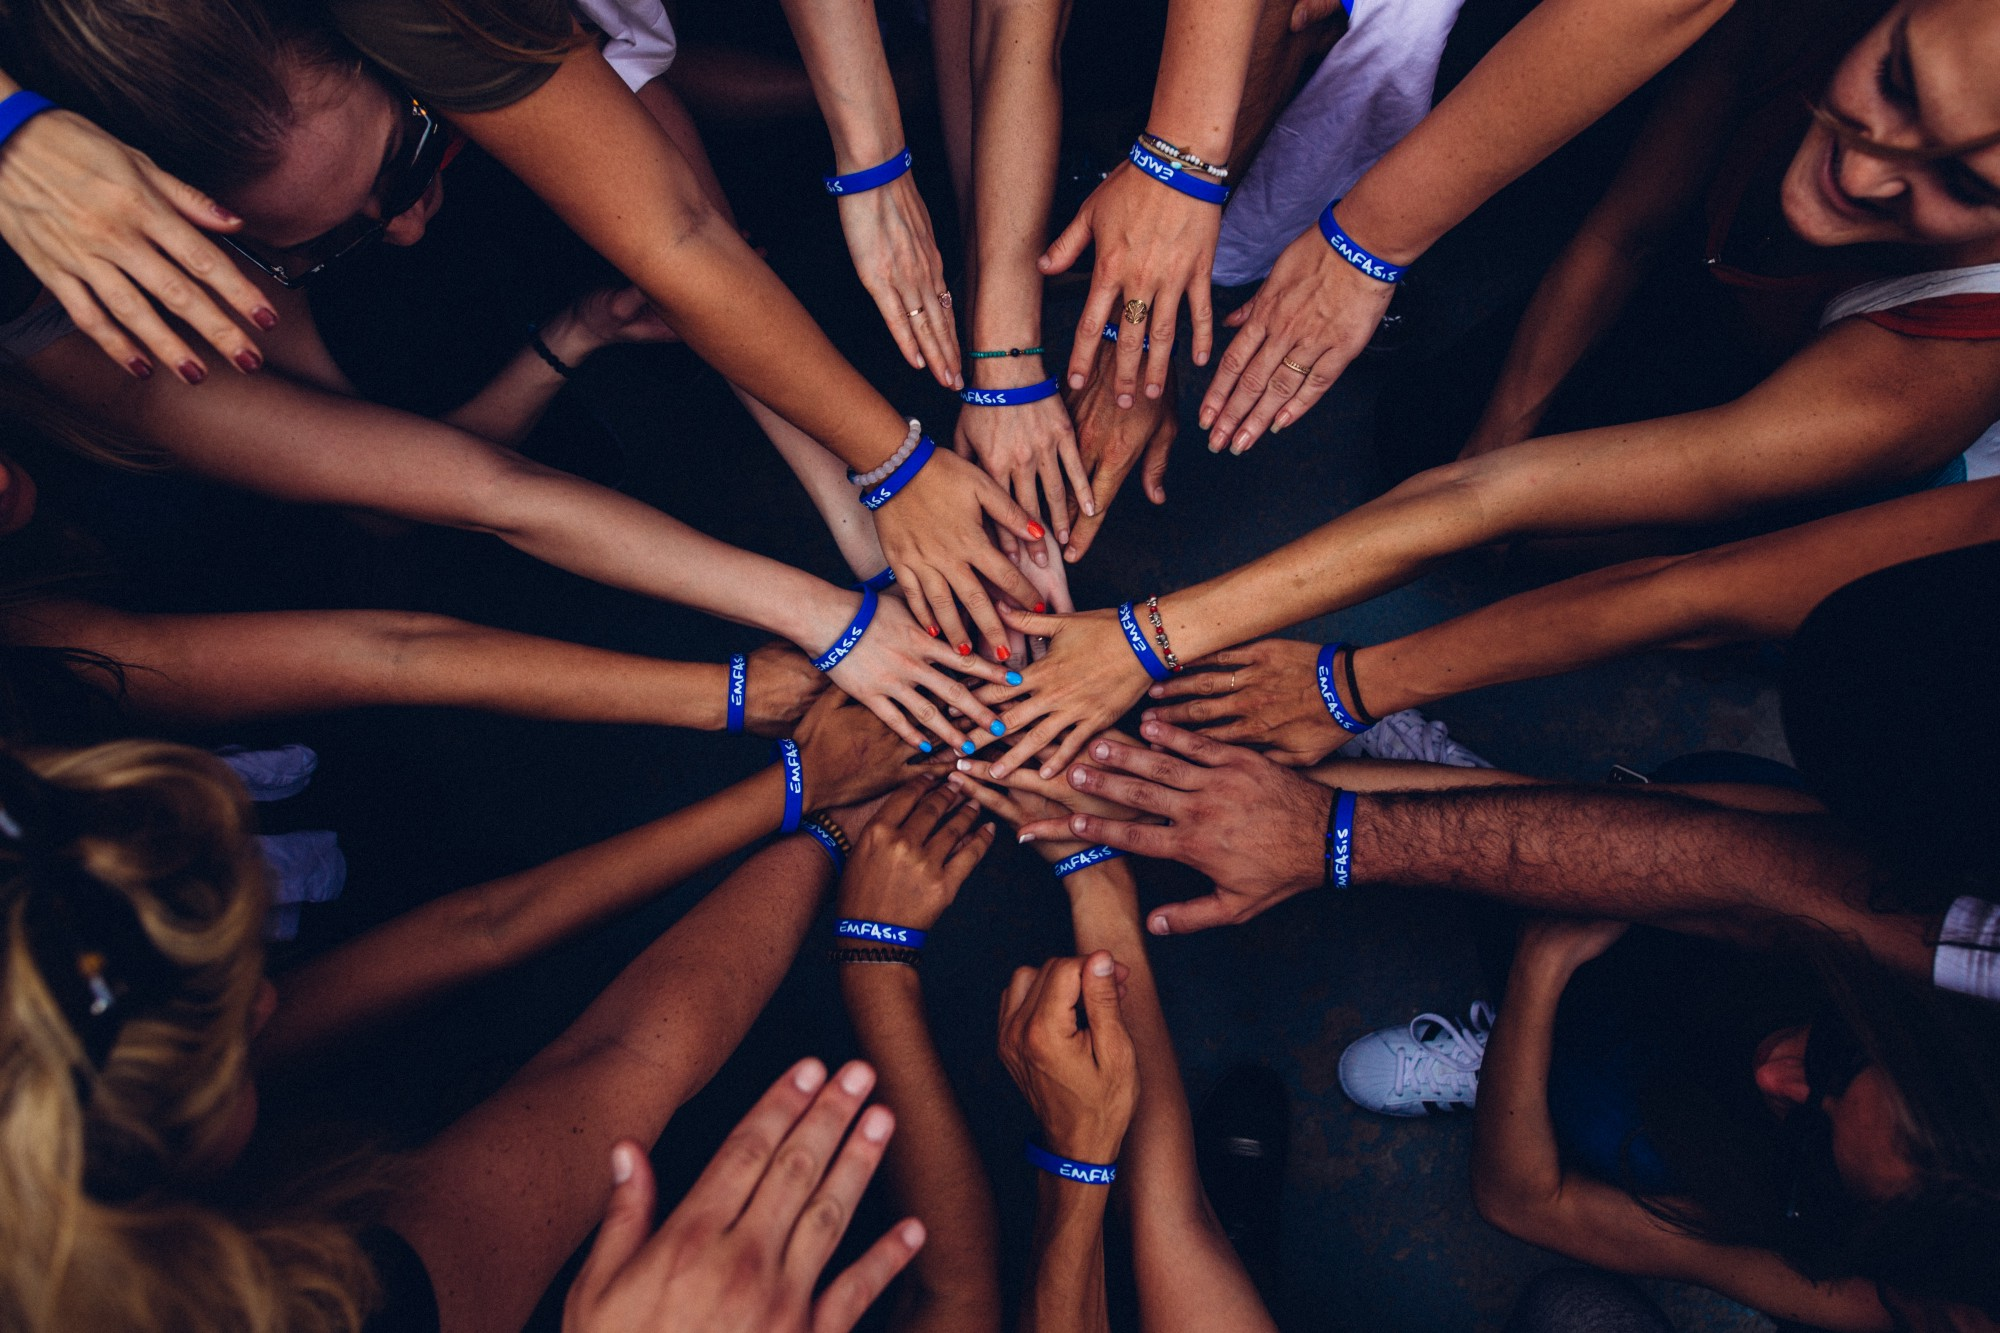 several hands placed on top of one another to show teamwork and community